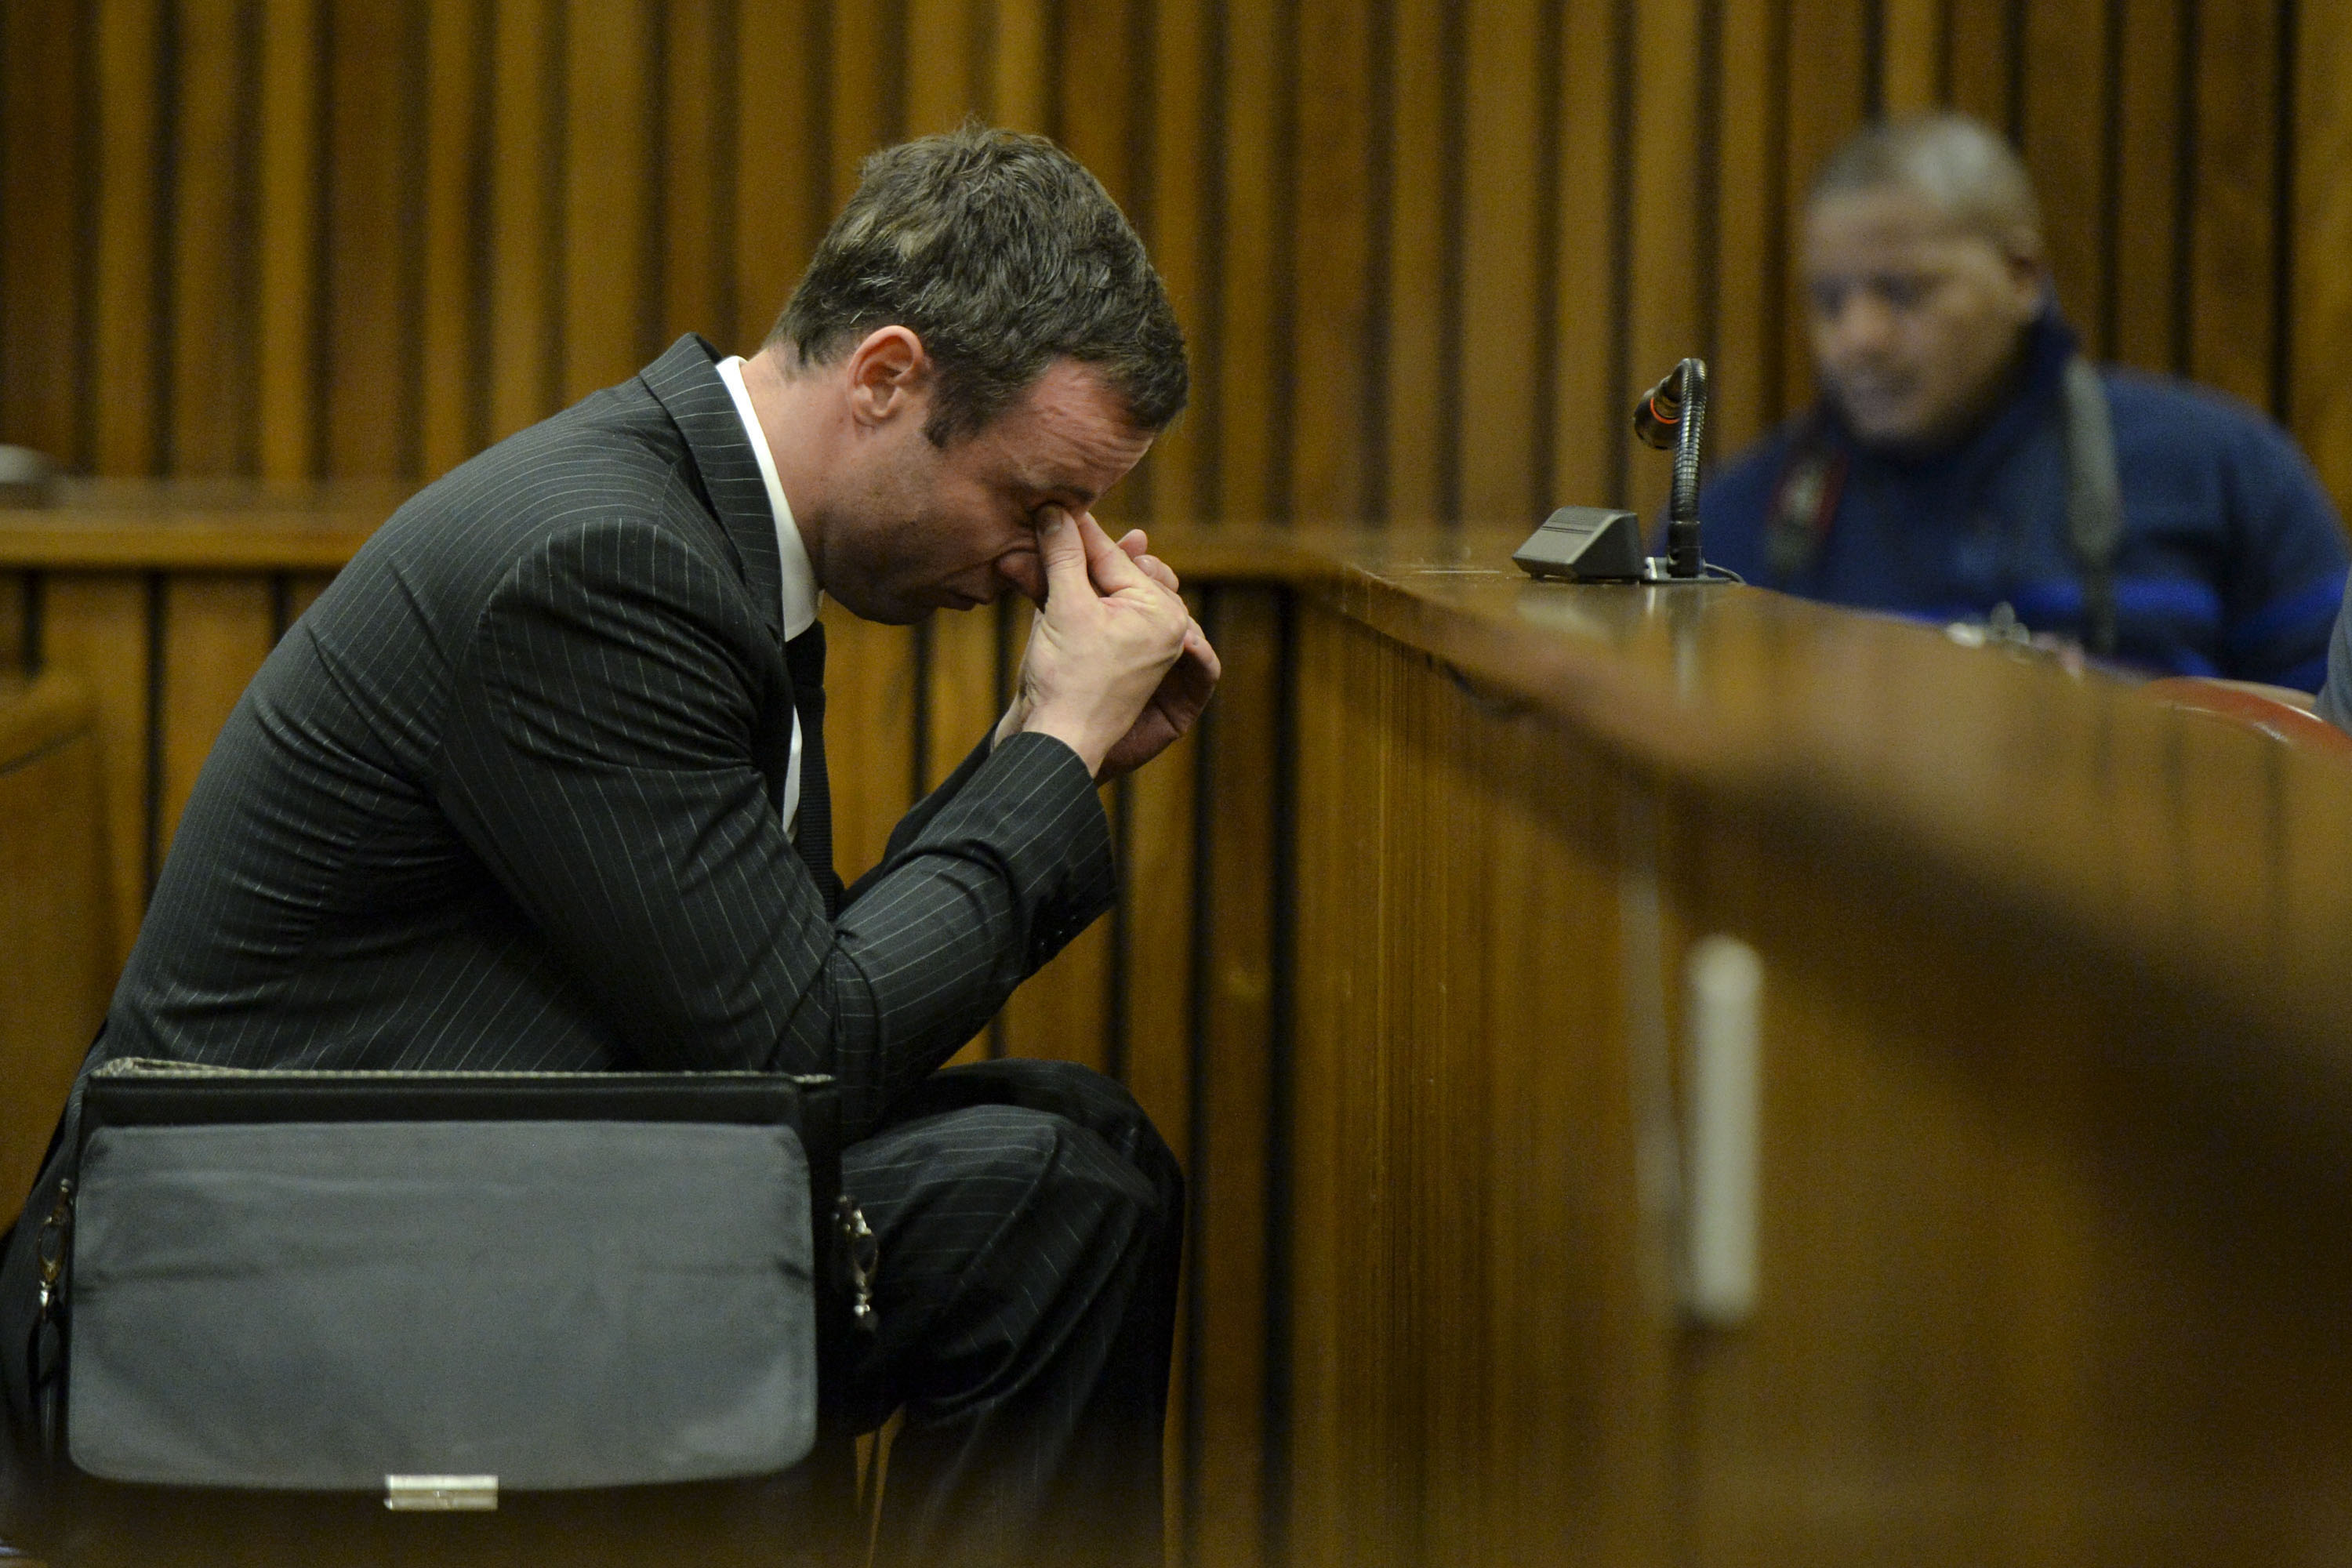 Oscar Pistorius sits in the dock during closing arguments in his murder trial in the Pretoria High Court on August 8, 2014, in Pretoria, South Africa.